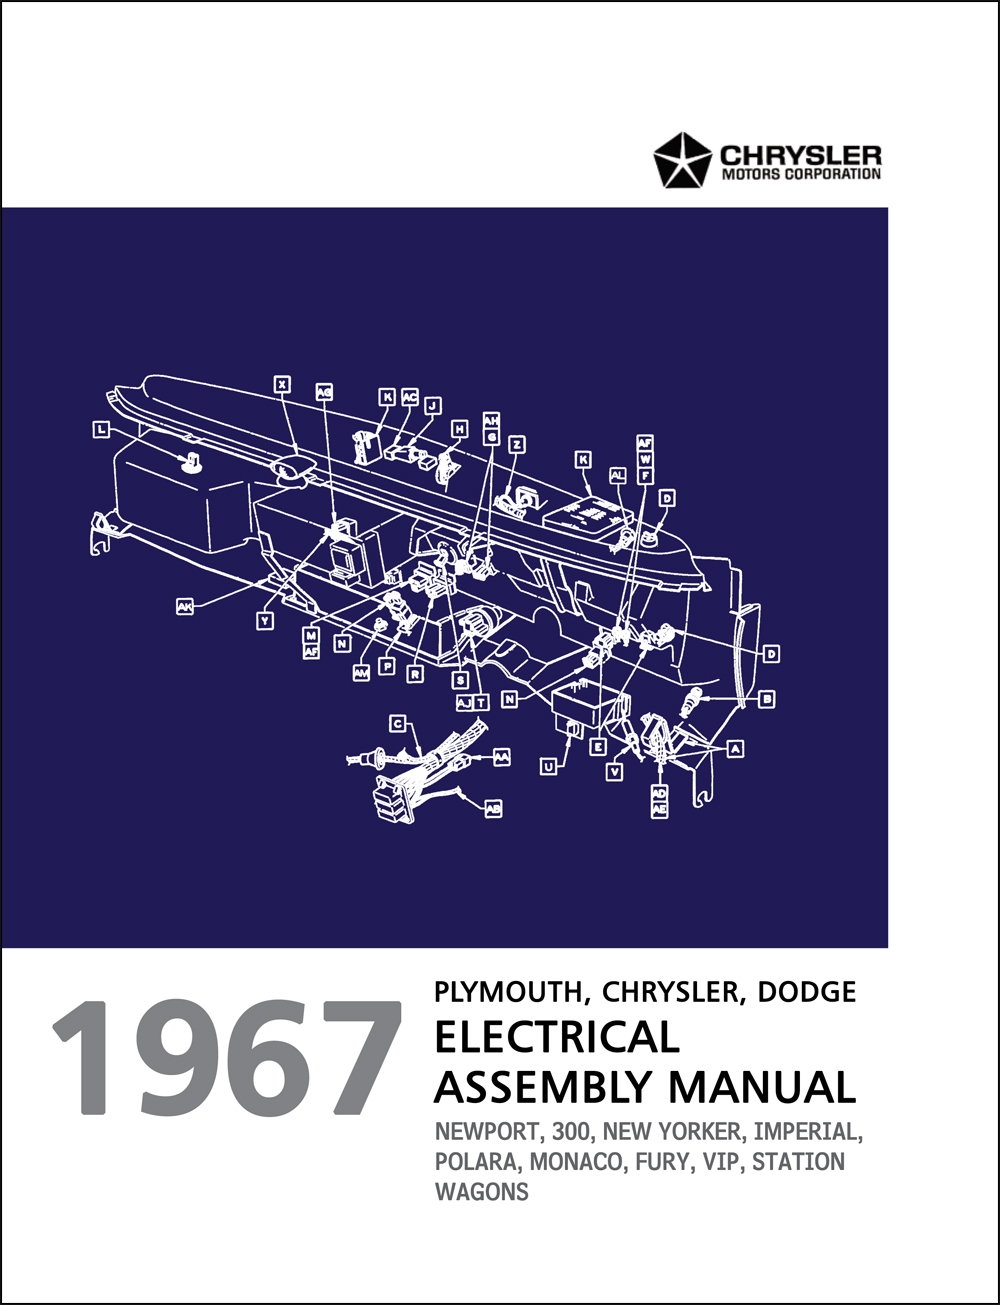 hight resolution of 1967 chrysler dodge and plymouth big car electrical assembly manual reprint